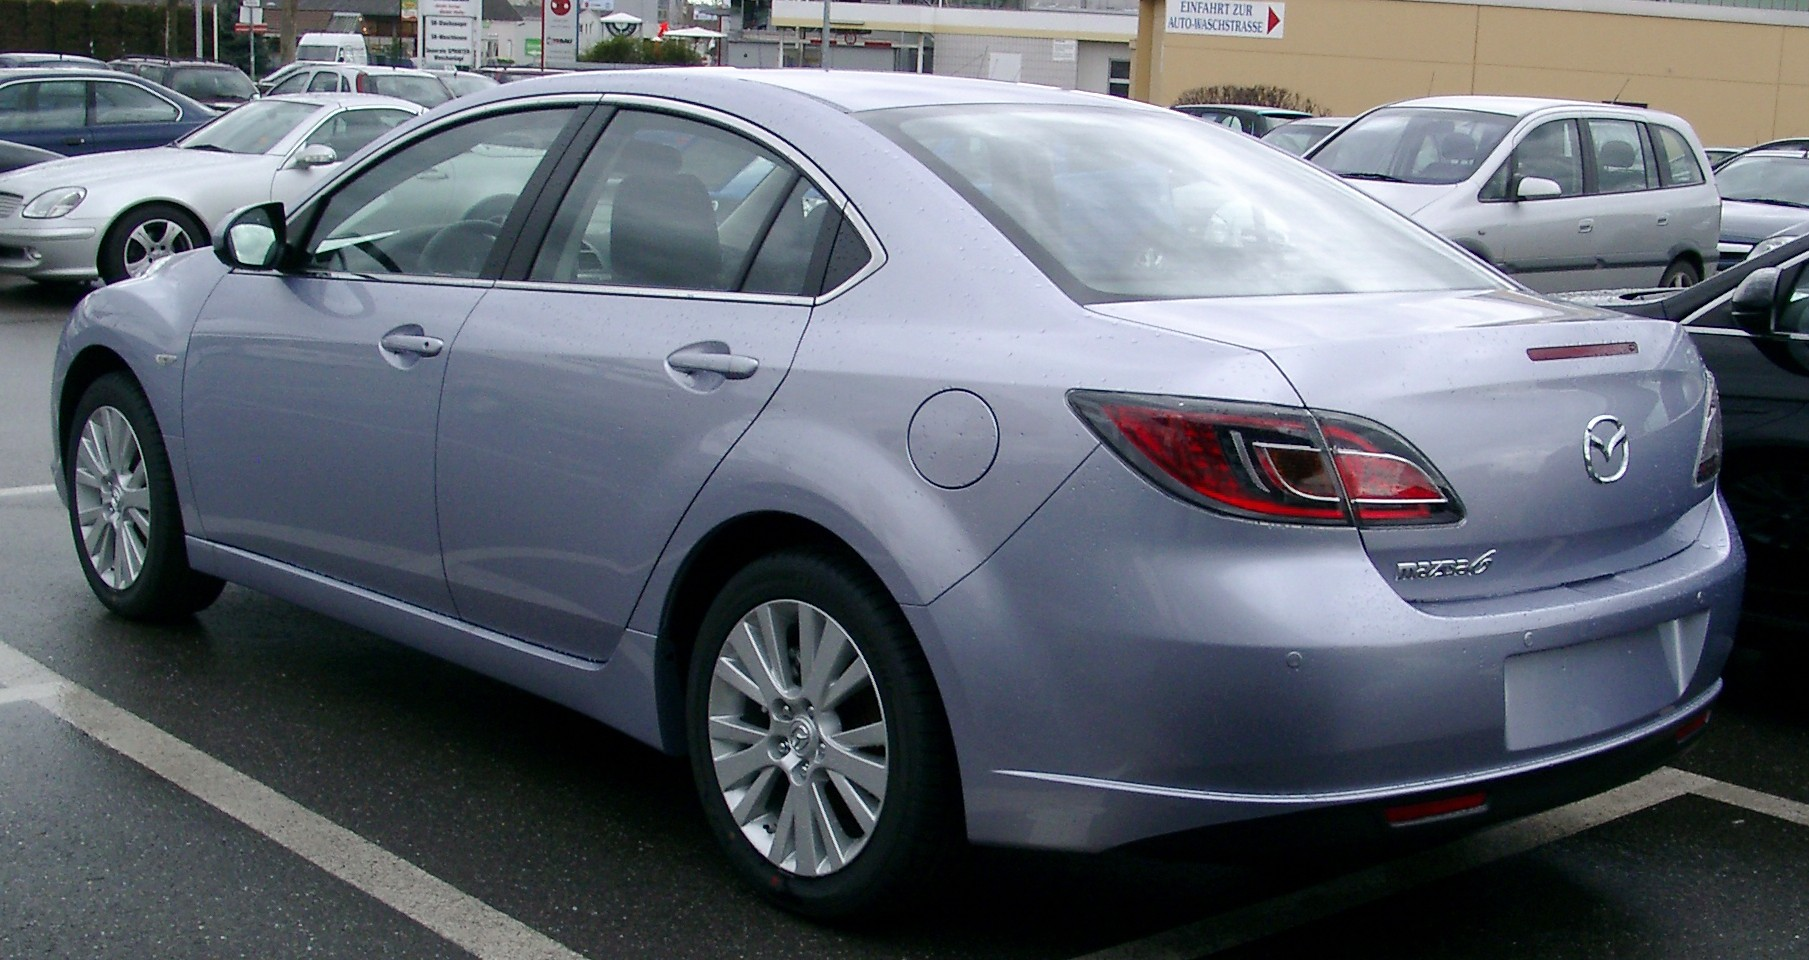 mazda 6 2008 review amazing pictures and images look at the car. Black Bedroom Furniture Sets. Home Design Ideas